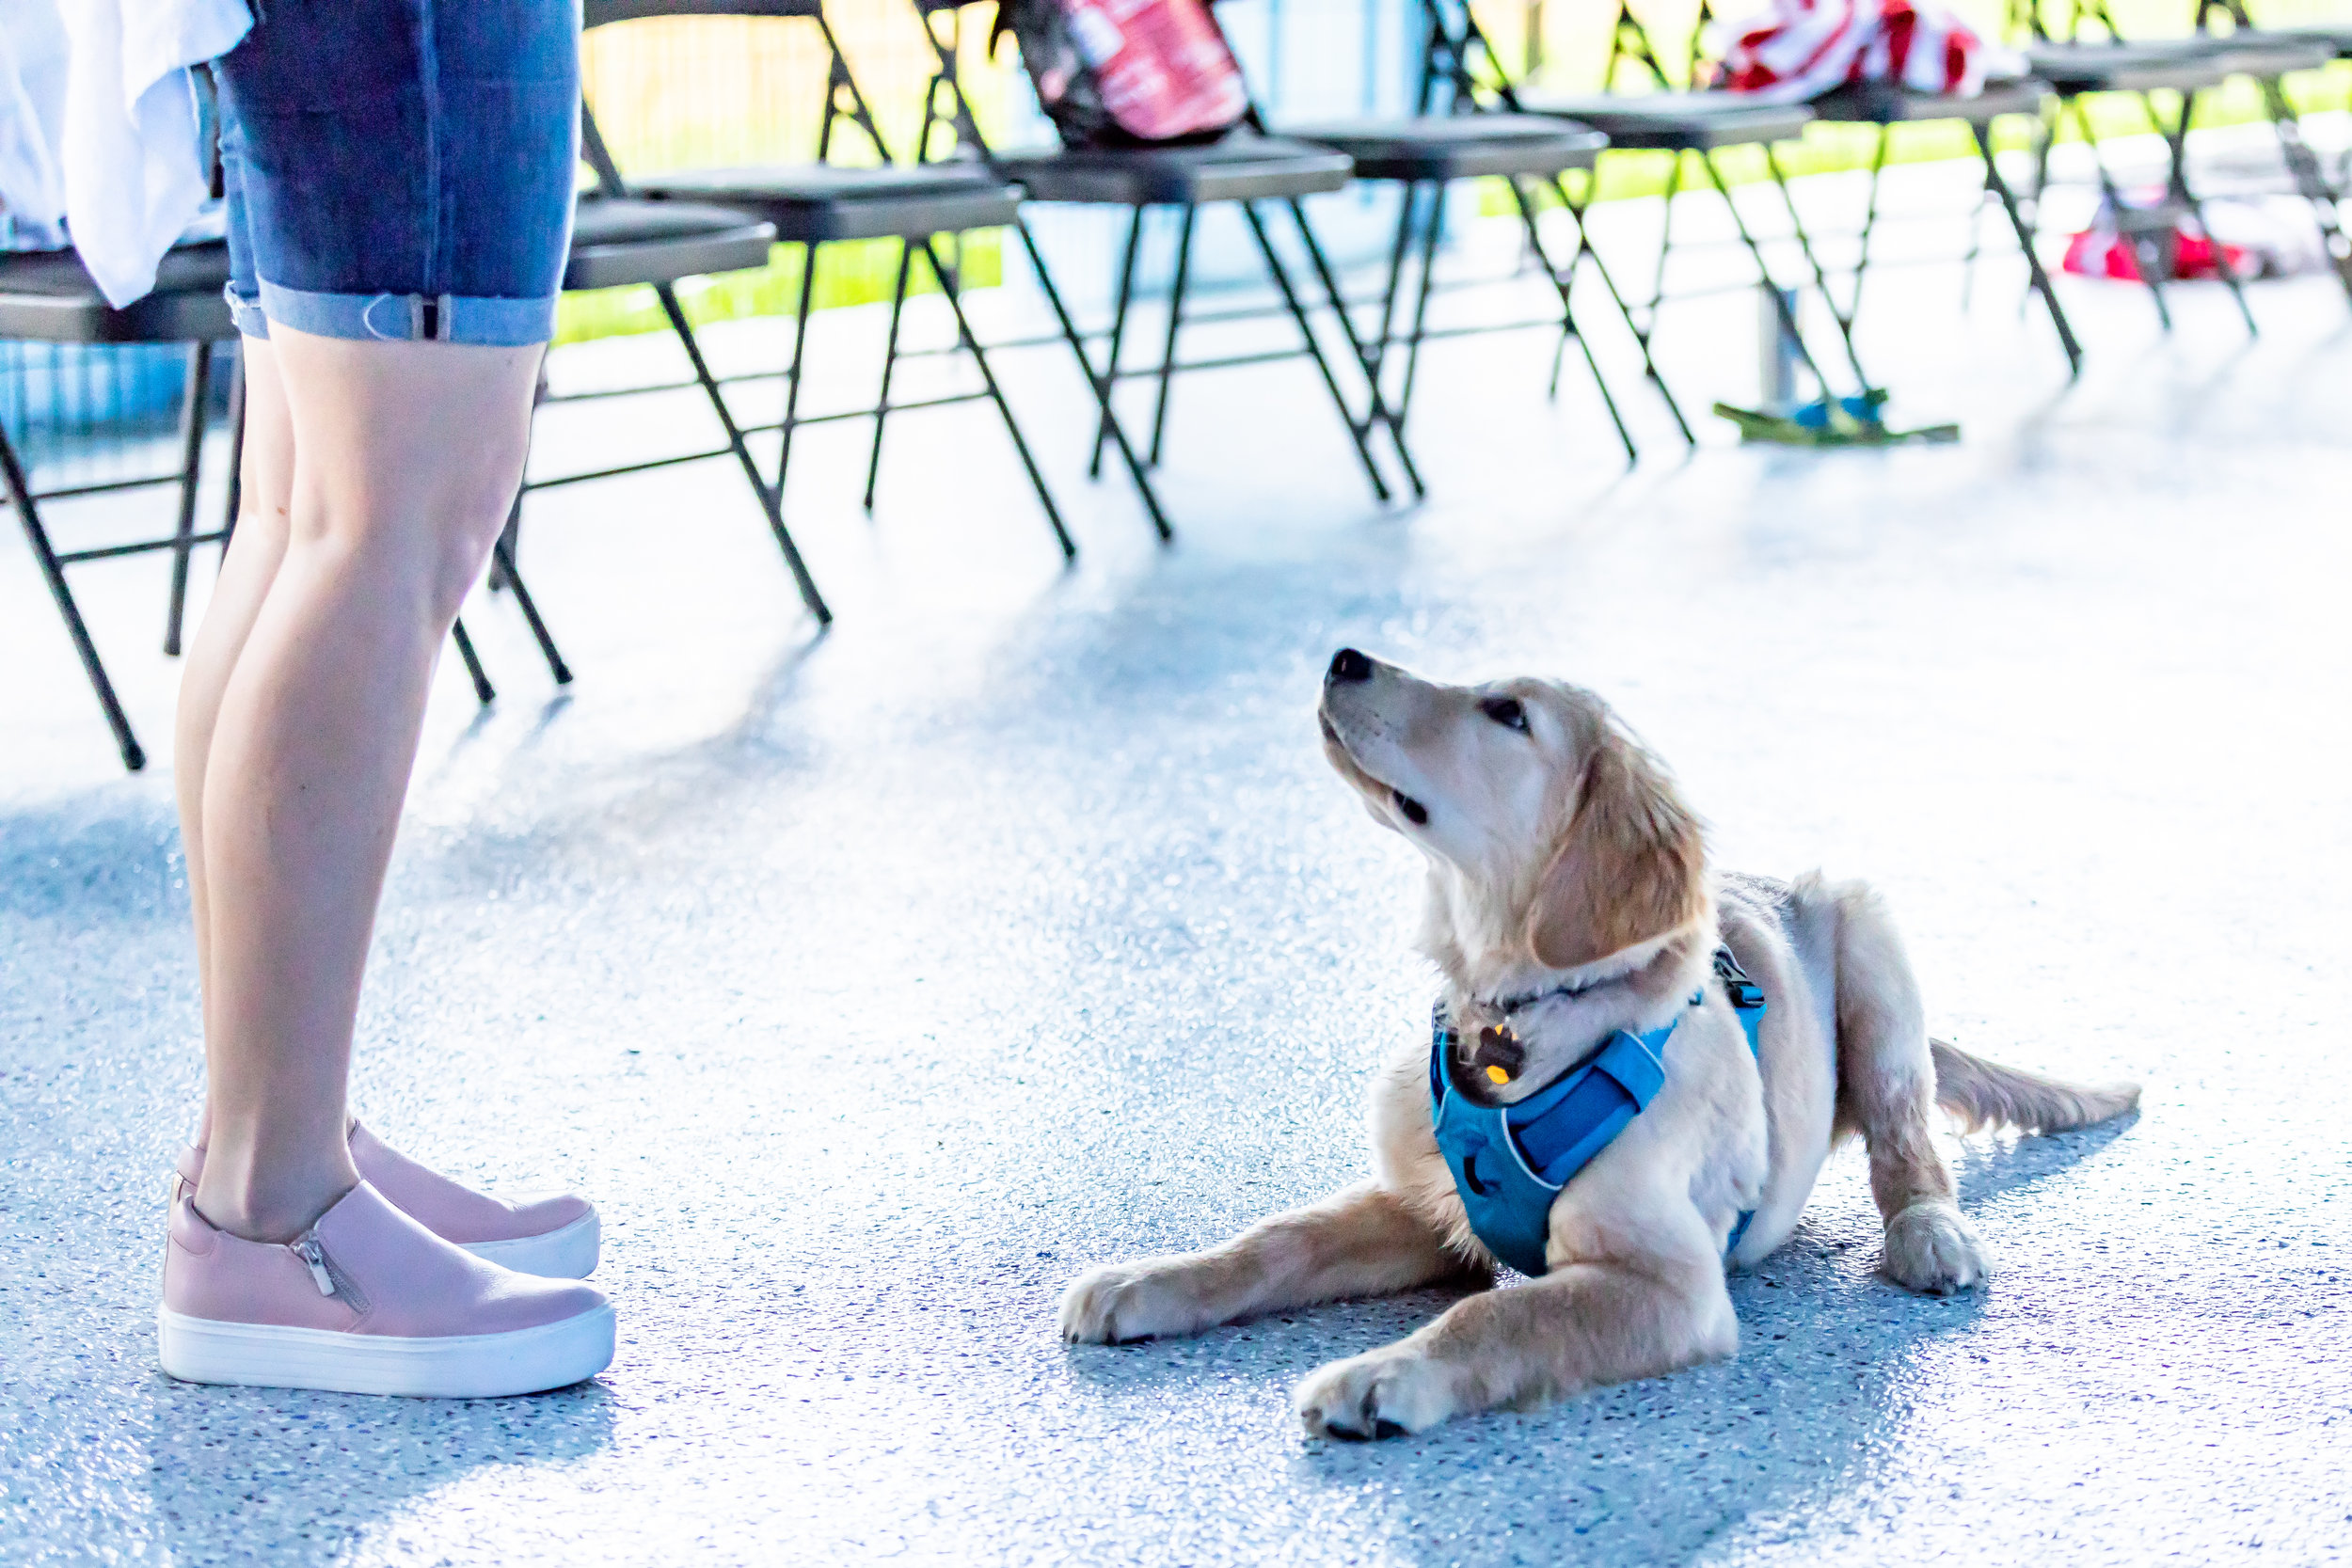 Rock Solid Stay - Can your dog keep a down-stay while you play Musical Chairs?Must have completed at least one of the following classes or packages:Puppy Class Part 1, Basic Manners, Puppy Day School Package of 10 or 20, or Private Lesson Package of 3Details:•Skills Clinics are $70 each and 90 minutes long• Proof of Rabies, DHLLPP/DA2P, and Bordetella are required.Upcoming Dates:October 4th @ 6:30pm